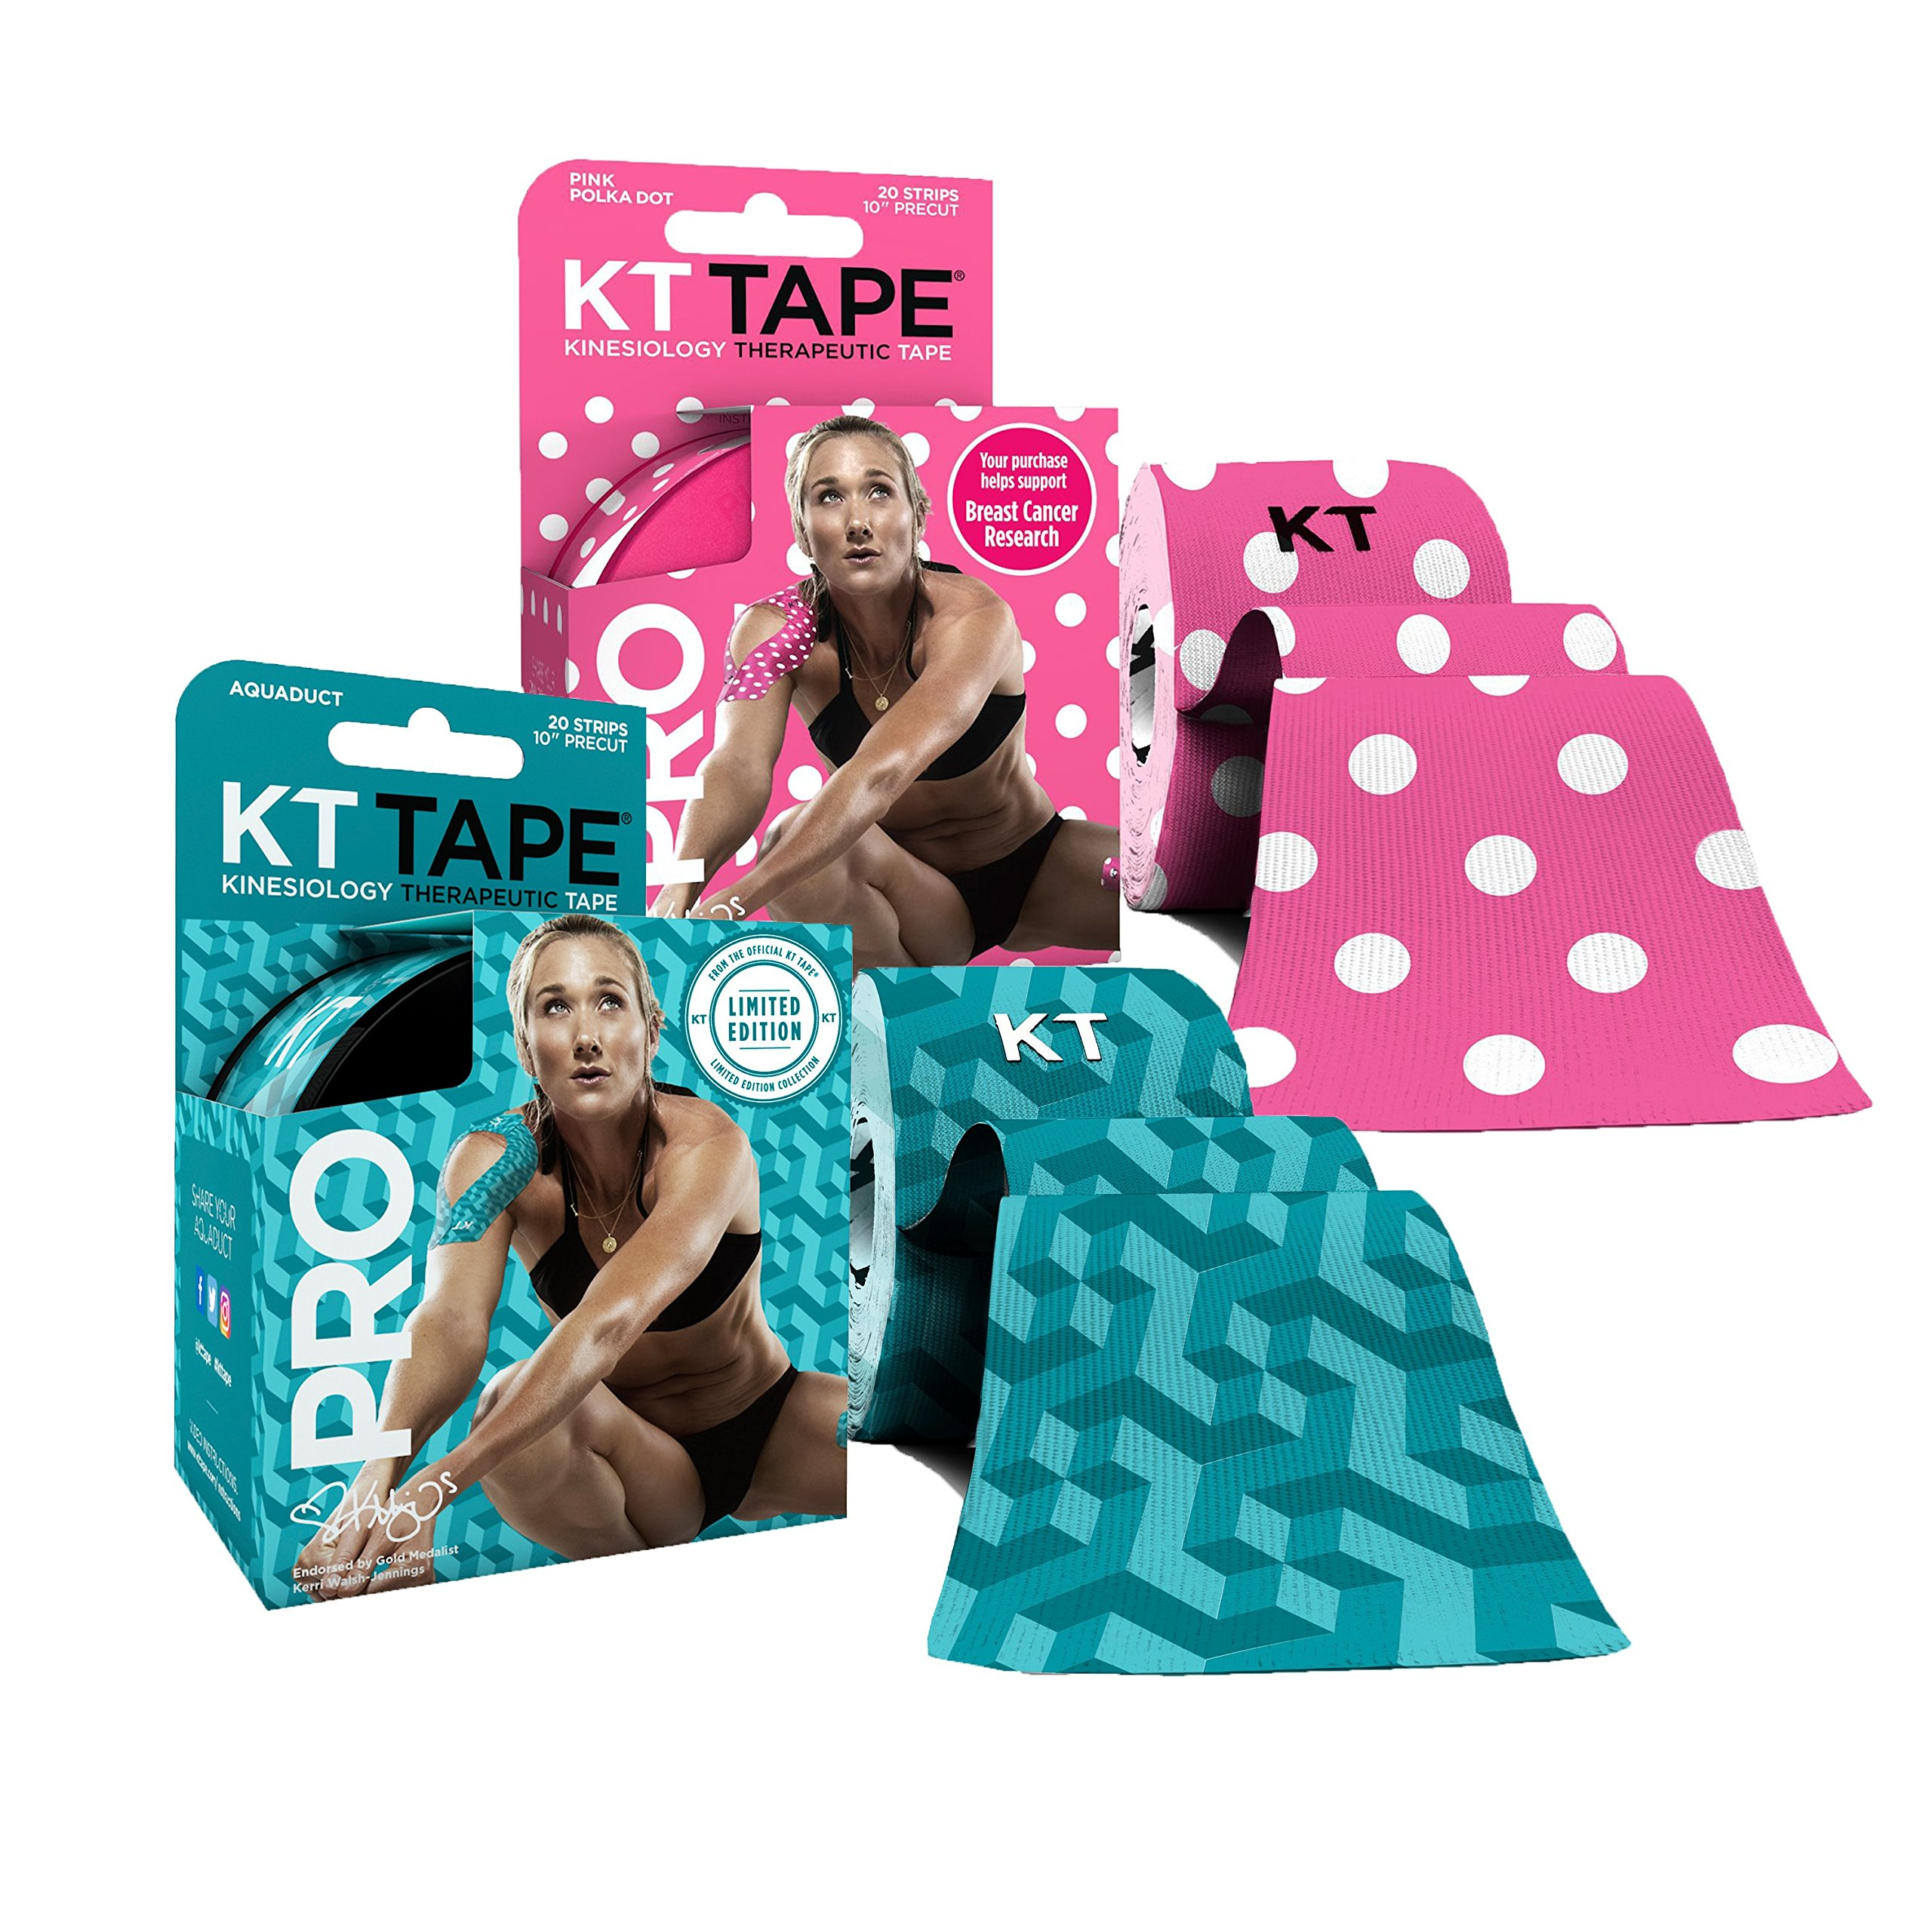 KT Tape PRO Precut 40-Strip Synthetic Kinesiology Tape Two-Roll Bundle - AQUADUCT & Pink Polka Dots